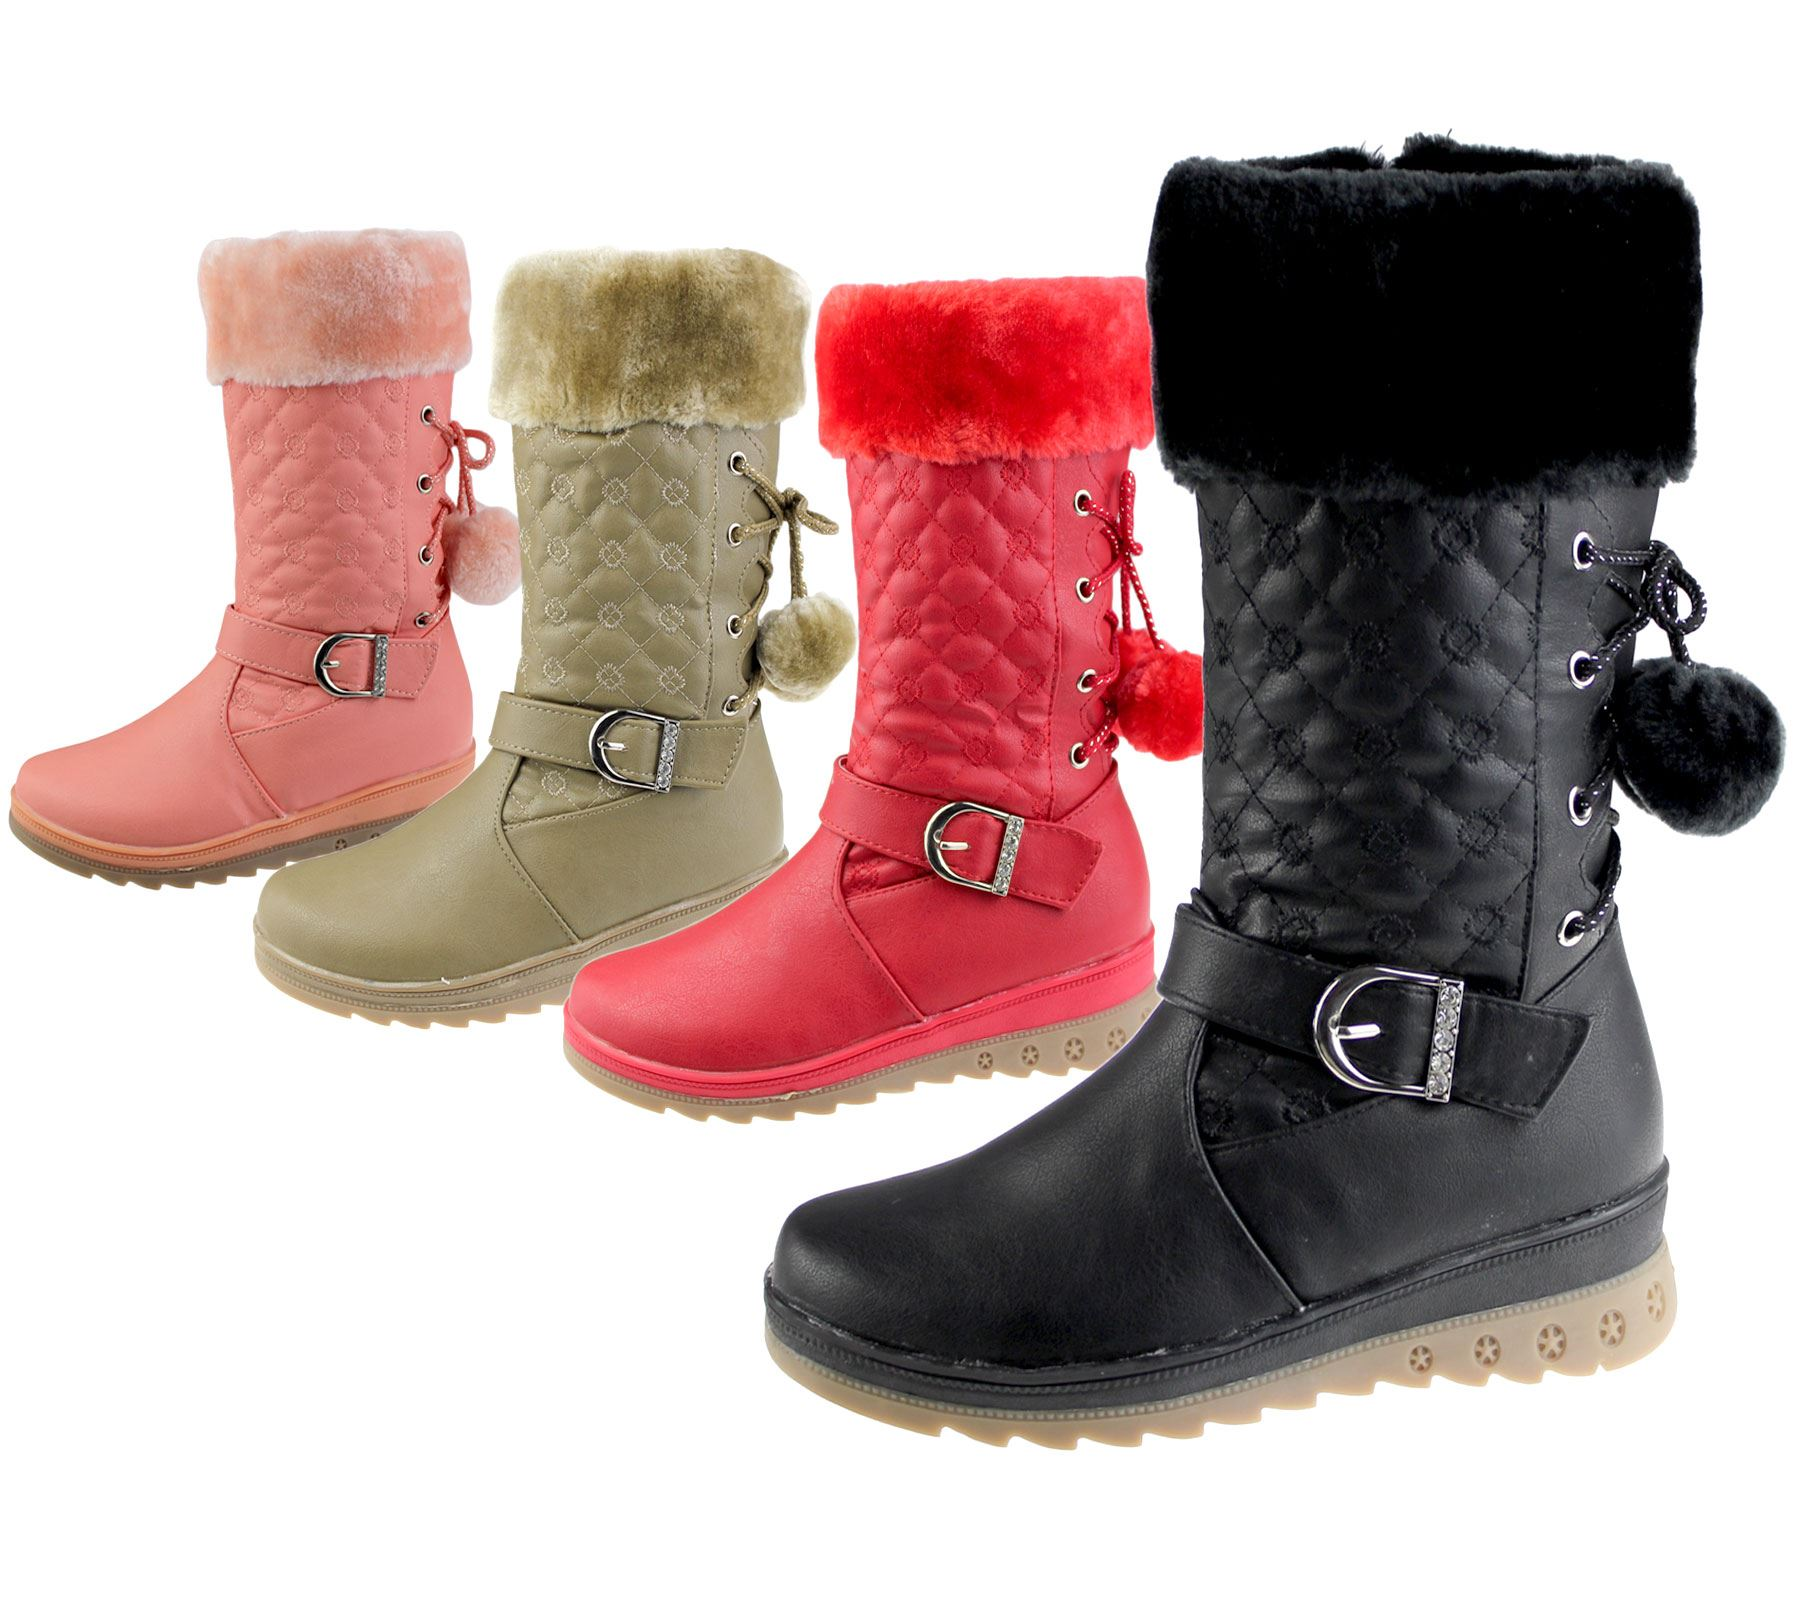 Christmas Boots For Girls.Details About Girls Warm Lined Boots Quilted Winter Warm Christmas High Top School Shoes Size